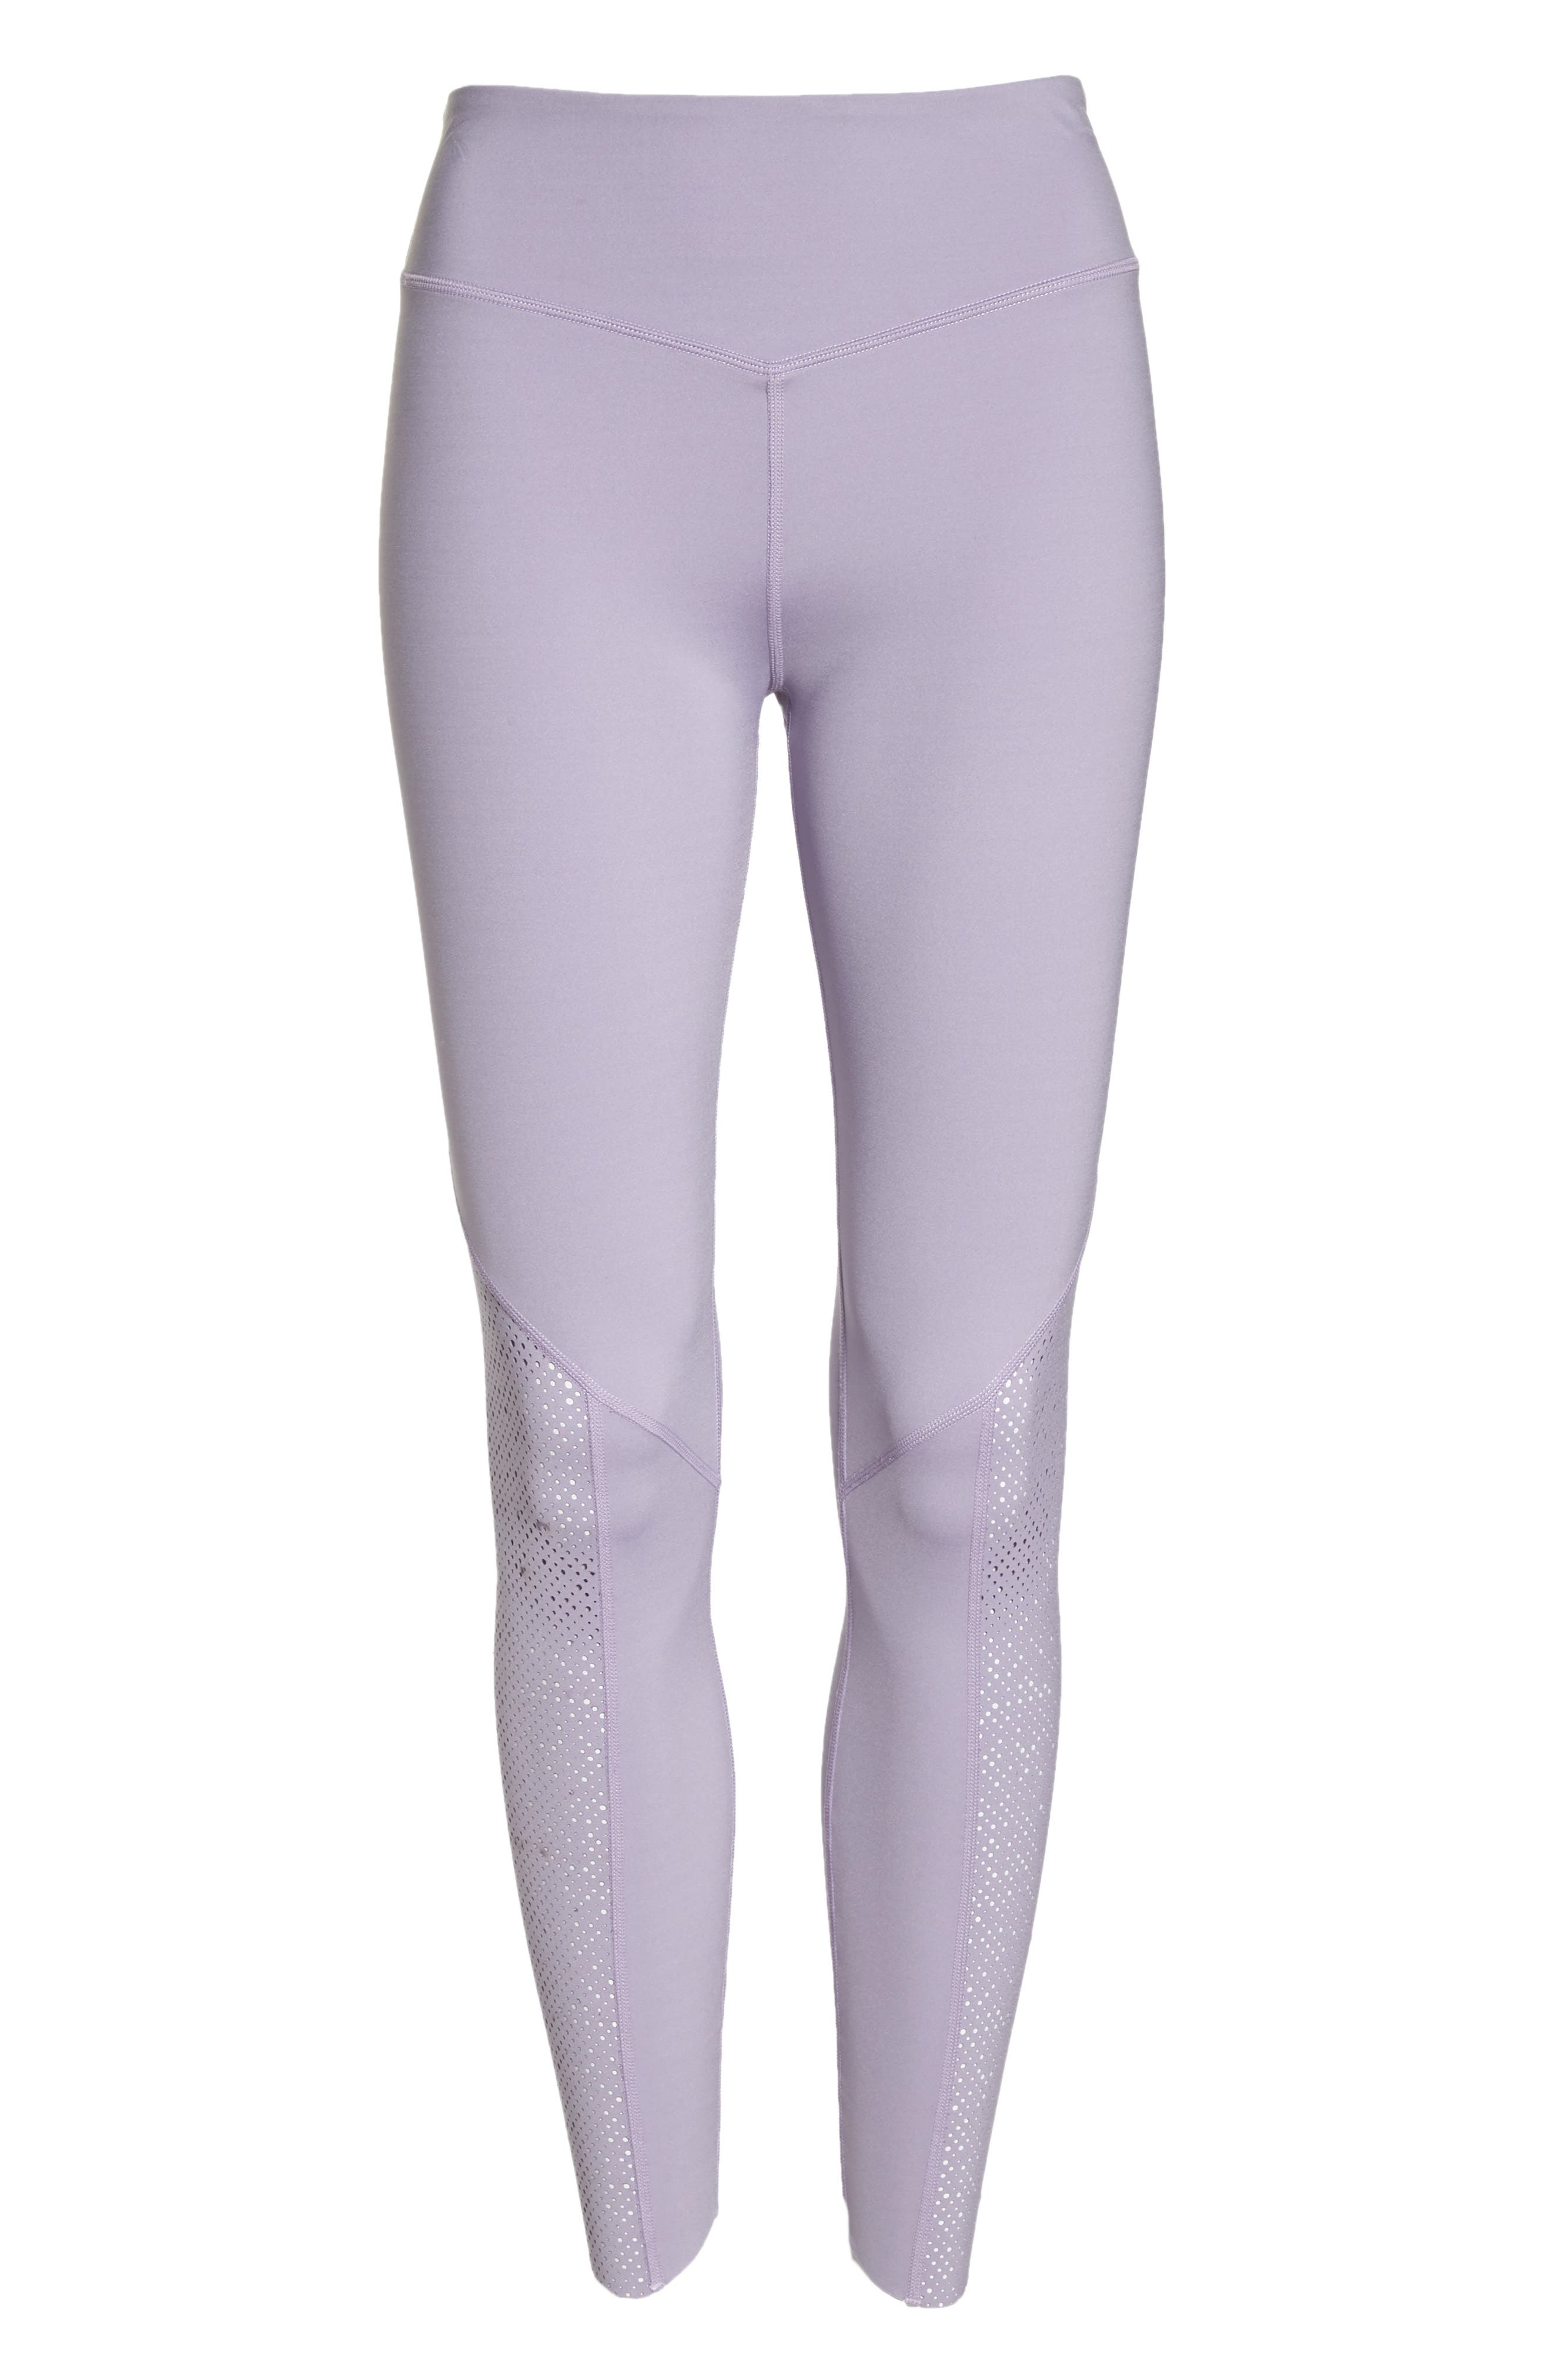 Chester Tights,                             Alternate thumbnail 7, color,                             500